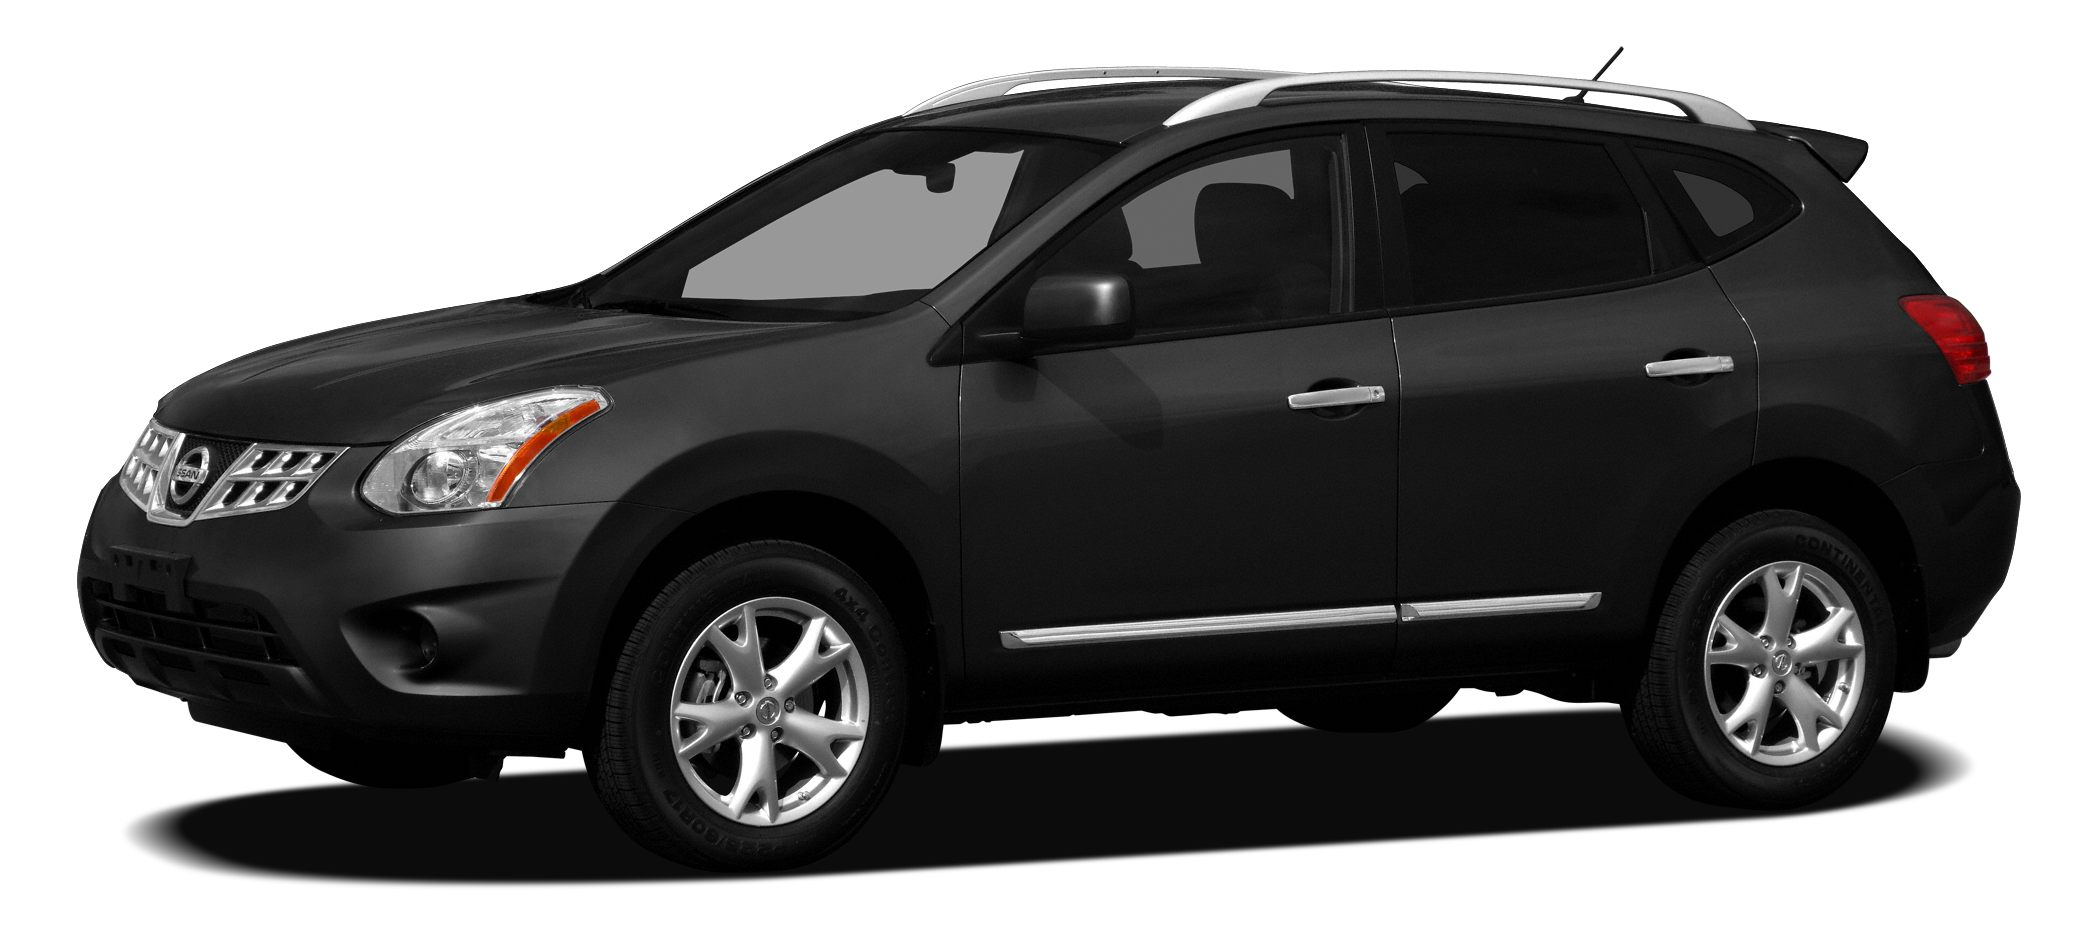 2011 Nissan Rogue SV Loaded Rouge SL with all the toysNavigation leatherSL Package Auto OnO